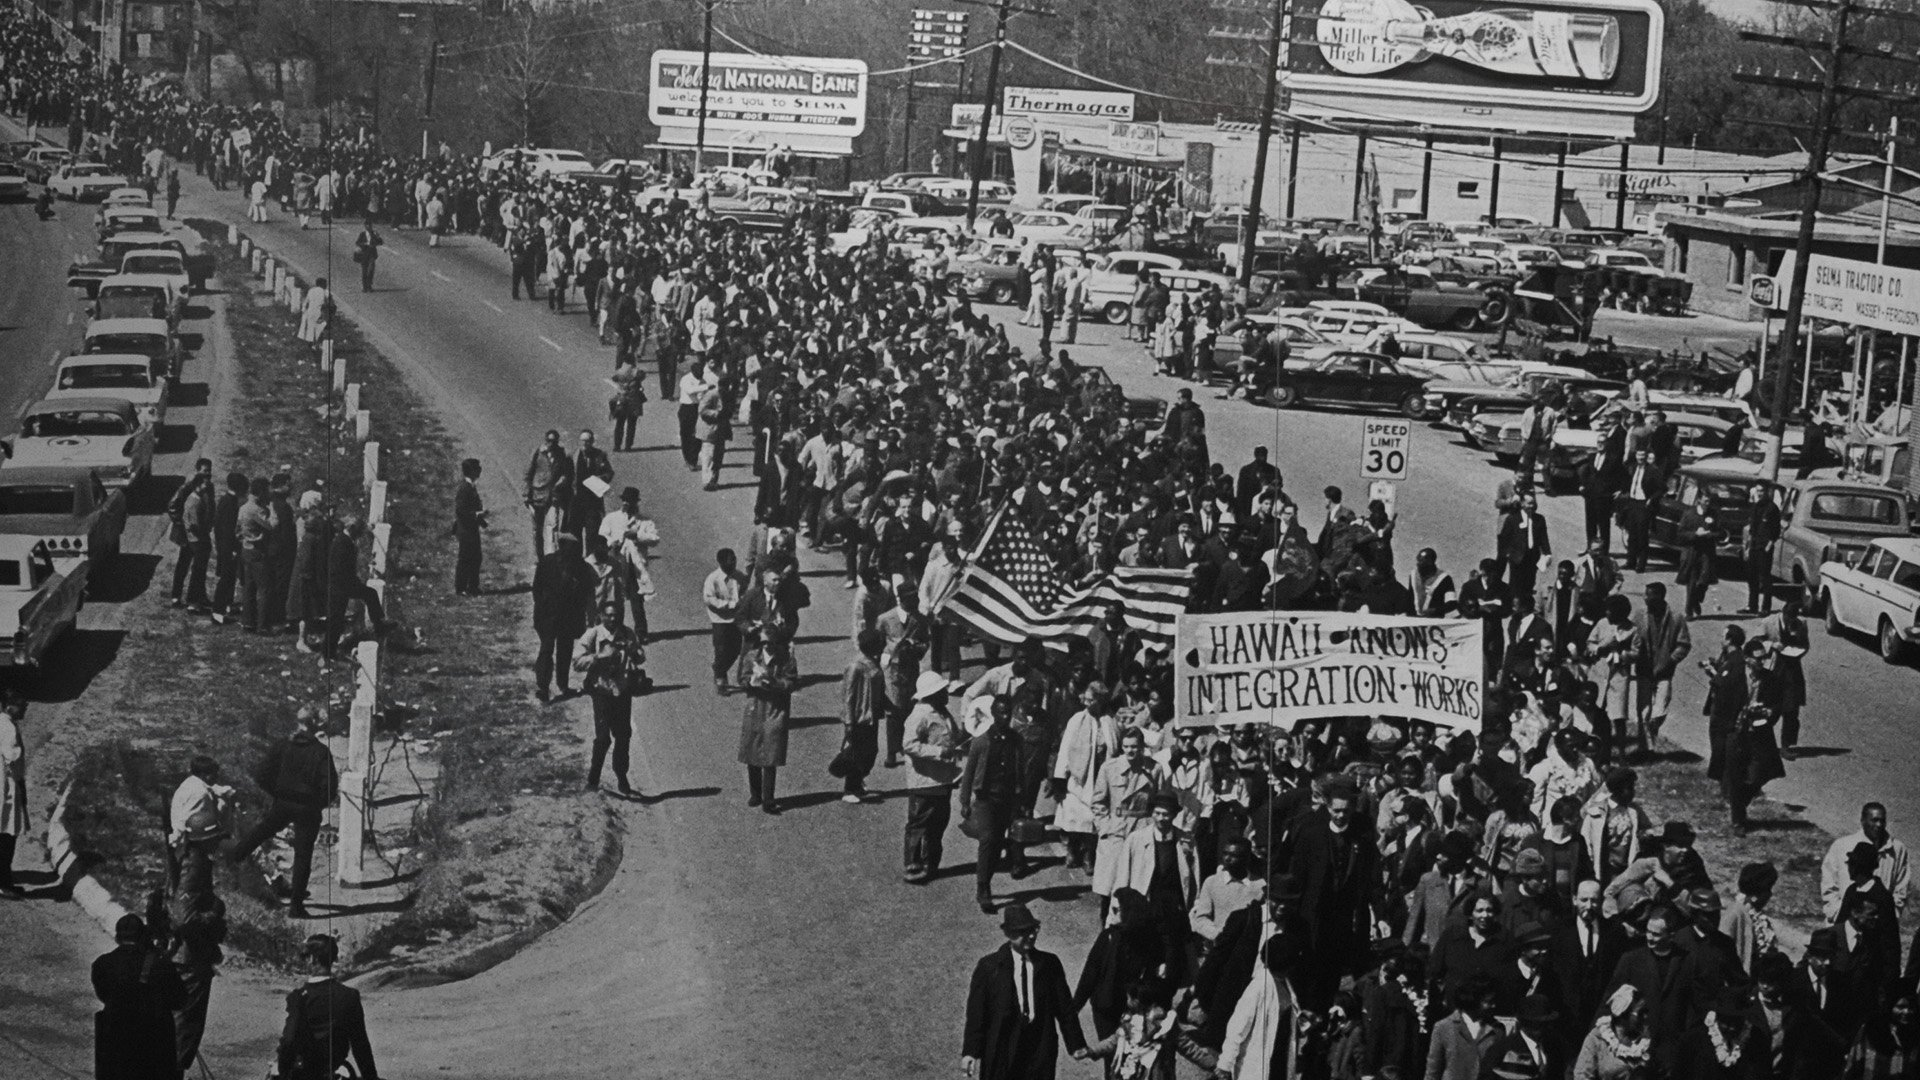 In March of 1965, black and white civil rights activists marched for the voting rights of all Americans.